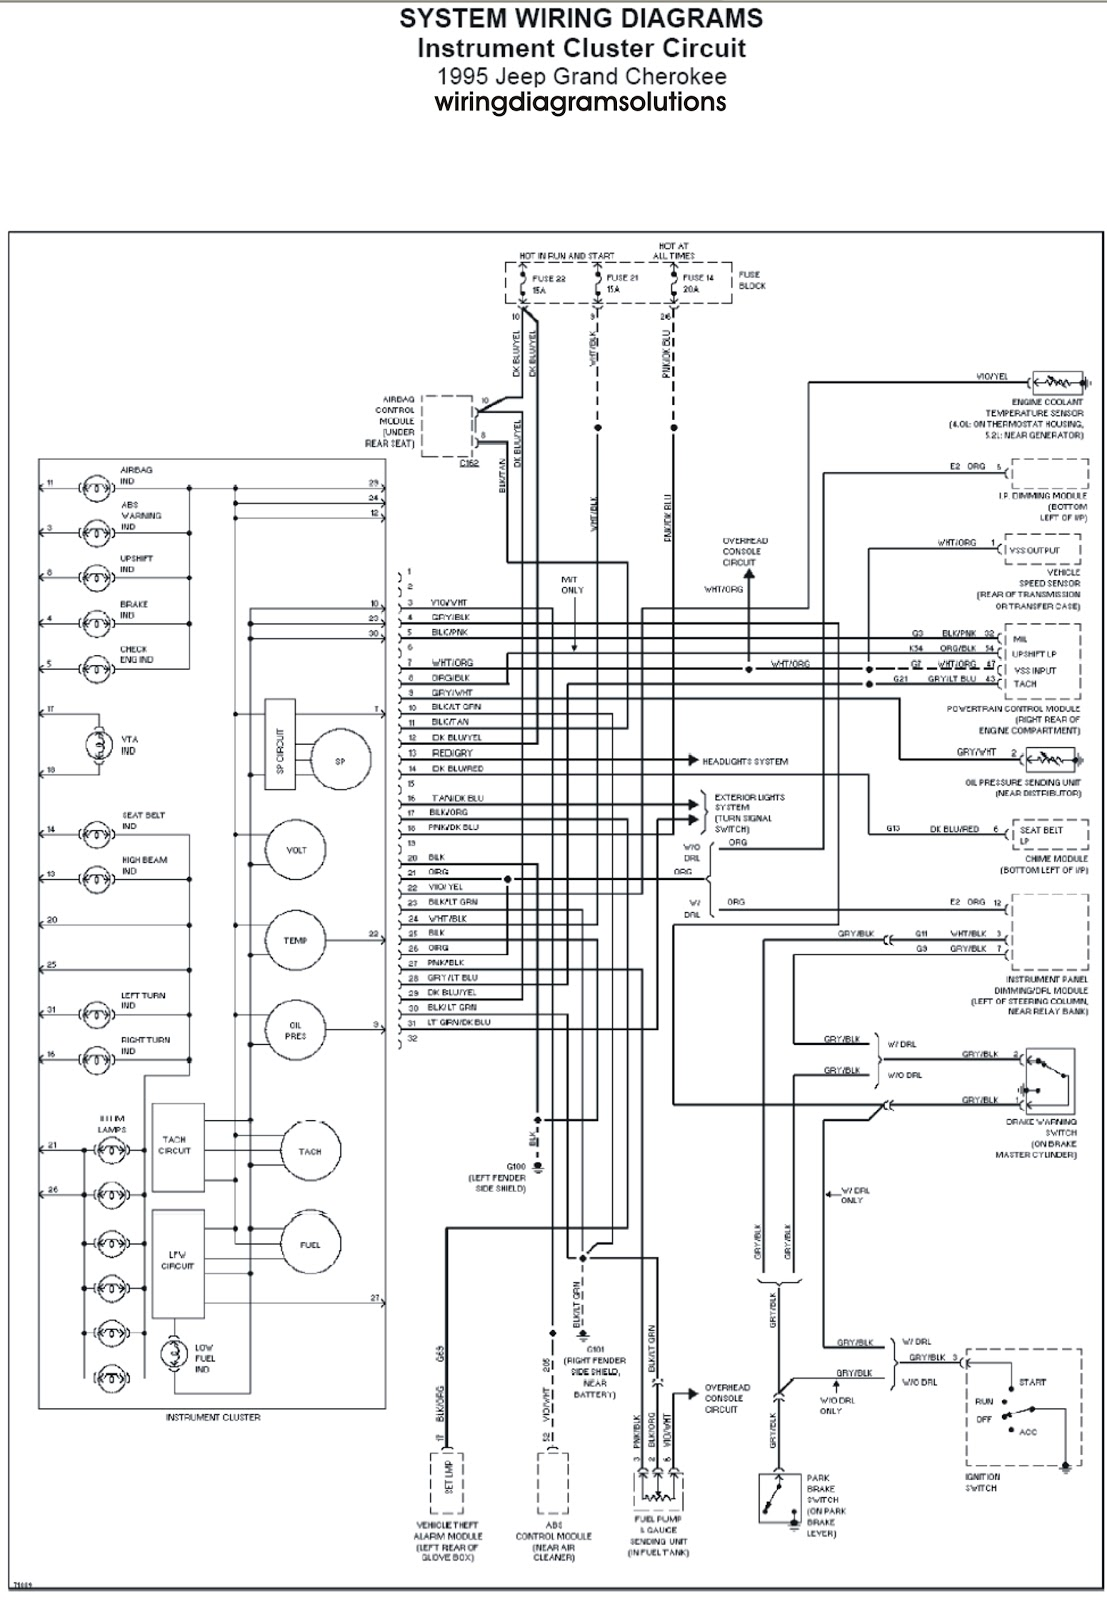 1998 Jeep 4 0 Wiring Schematic Simple Wiring Diagram 2004 Jeep Grand  Cherokee Wiring Diagram Electrical Wiring Diagram 1999 Jeep Cherokee